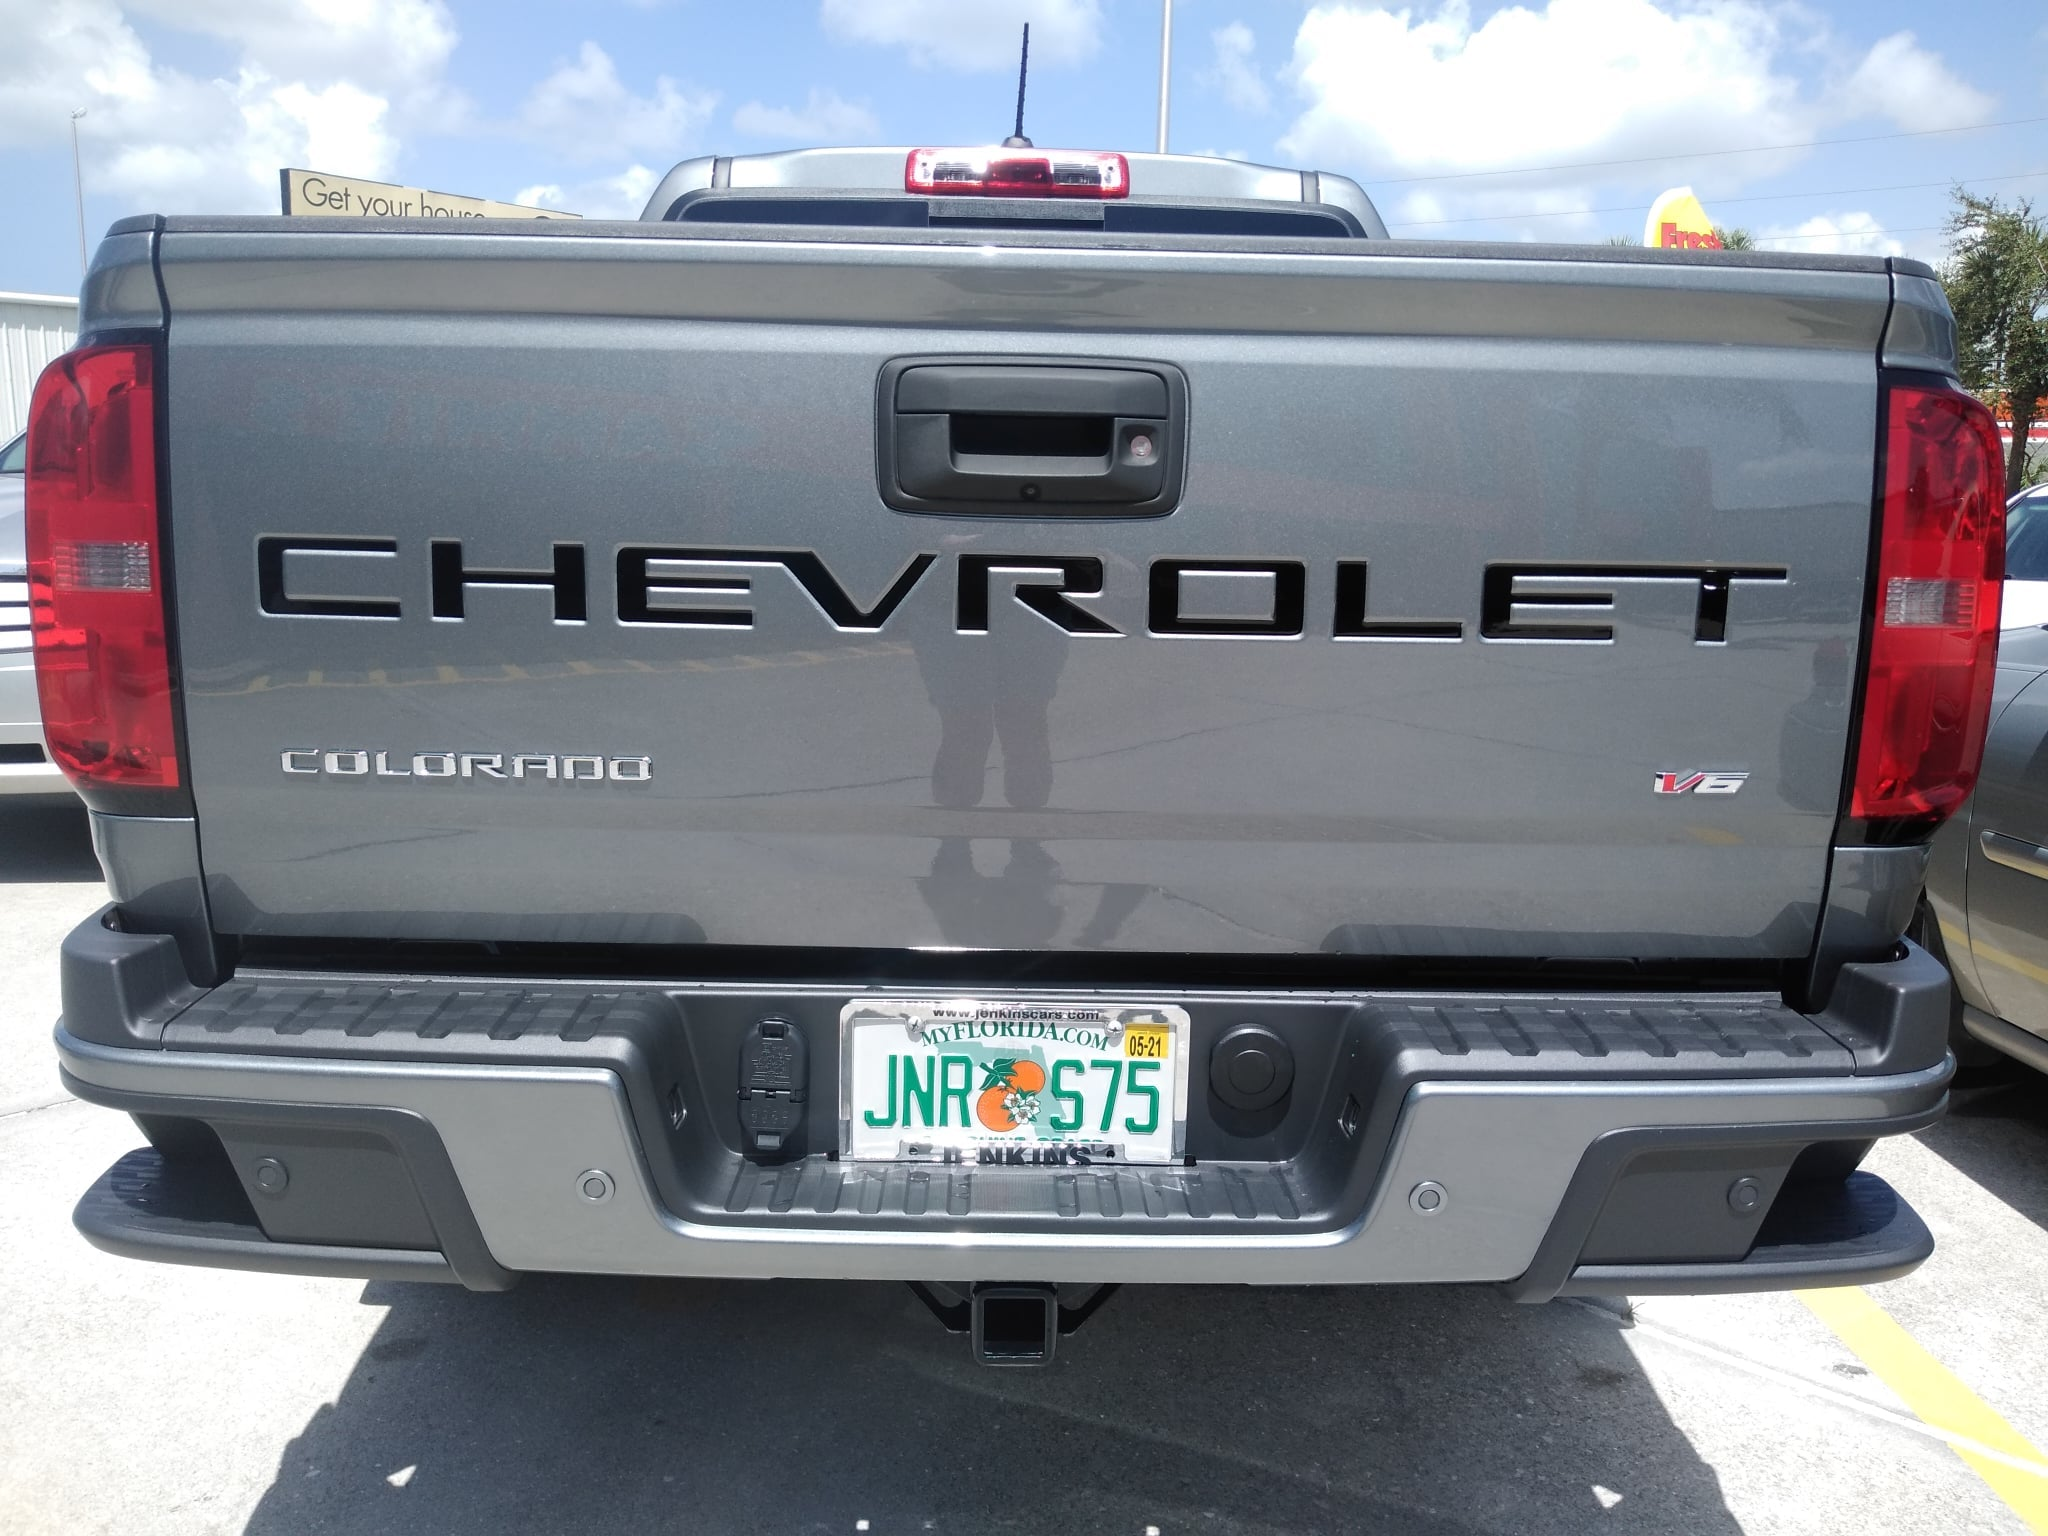 2021 Chevy Colorado Tailgate Letters ABS Plastic